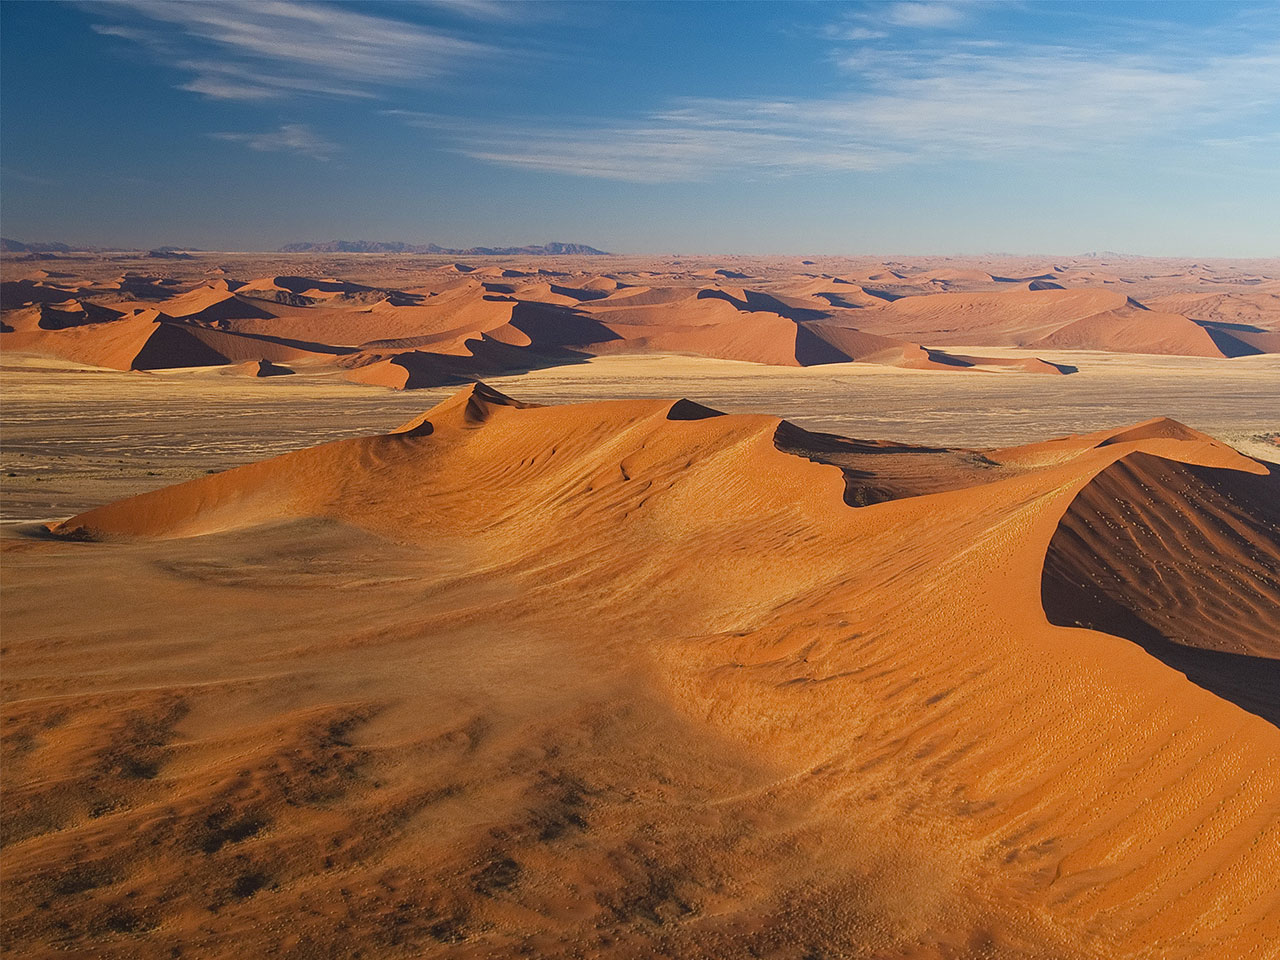 An aerial view over the vast sand dunes of the Namib Desert.